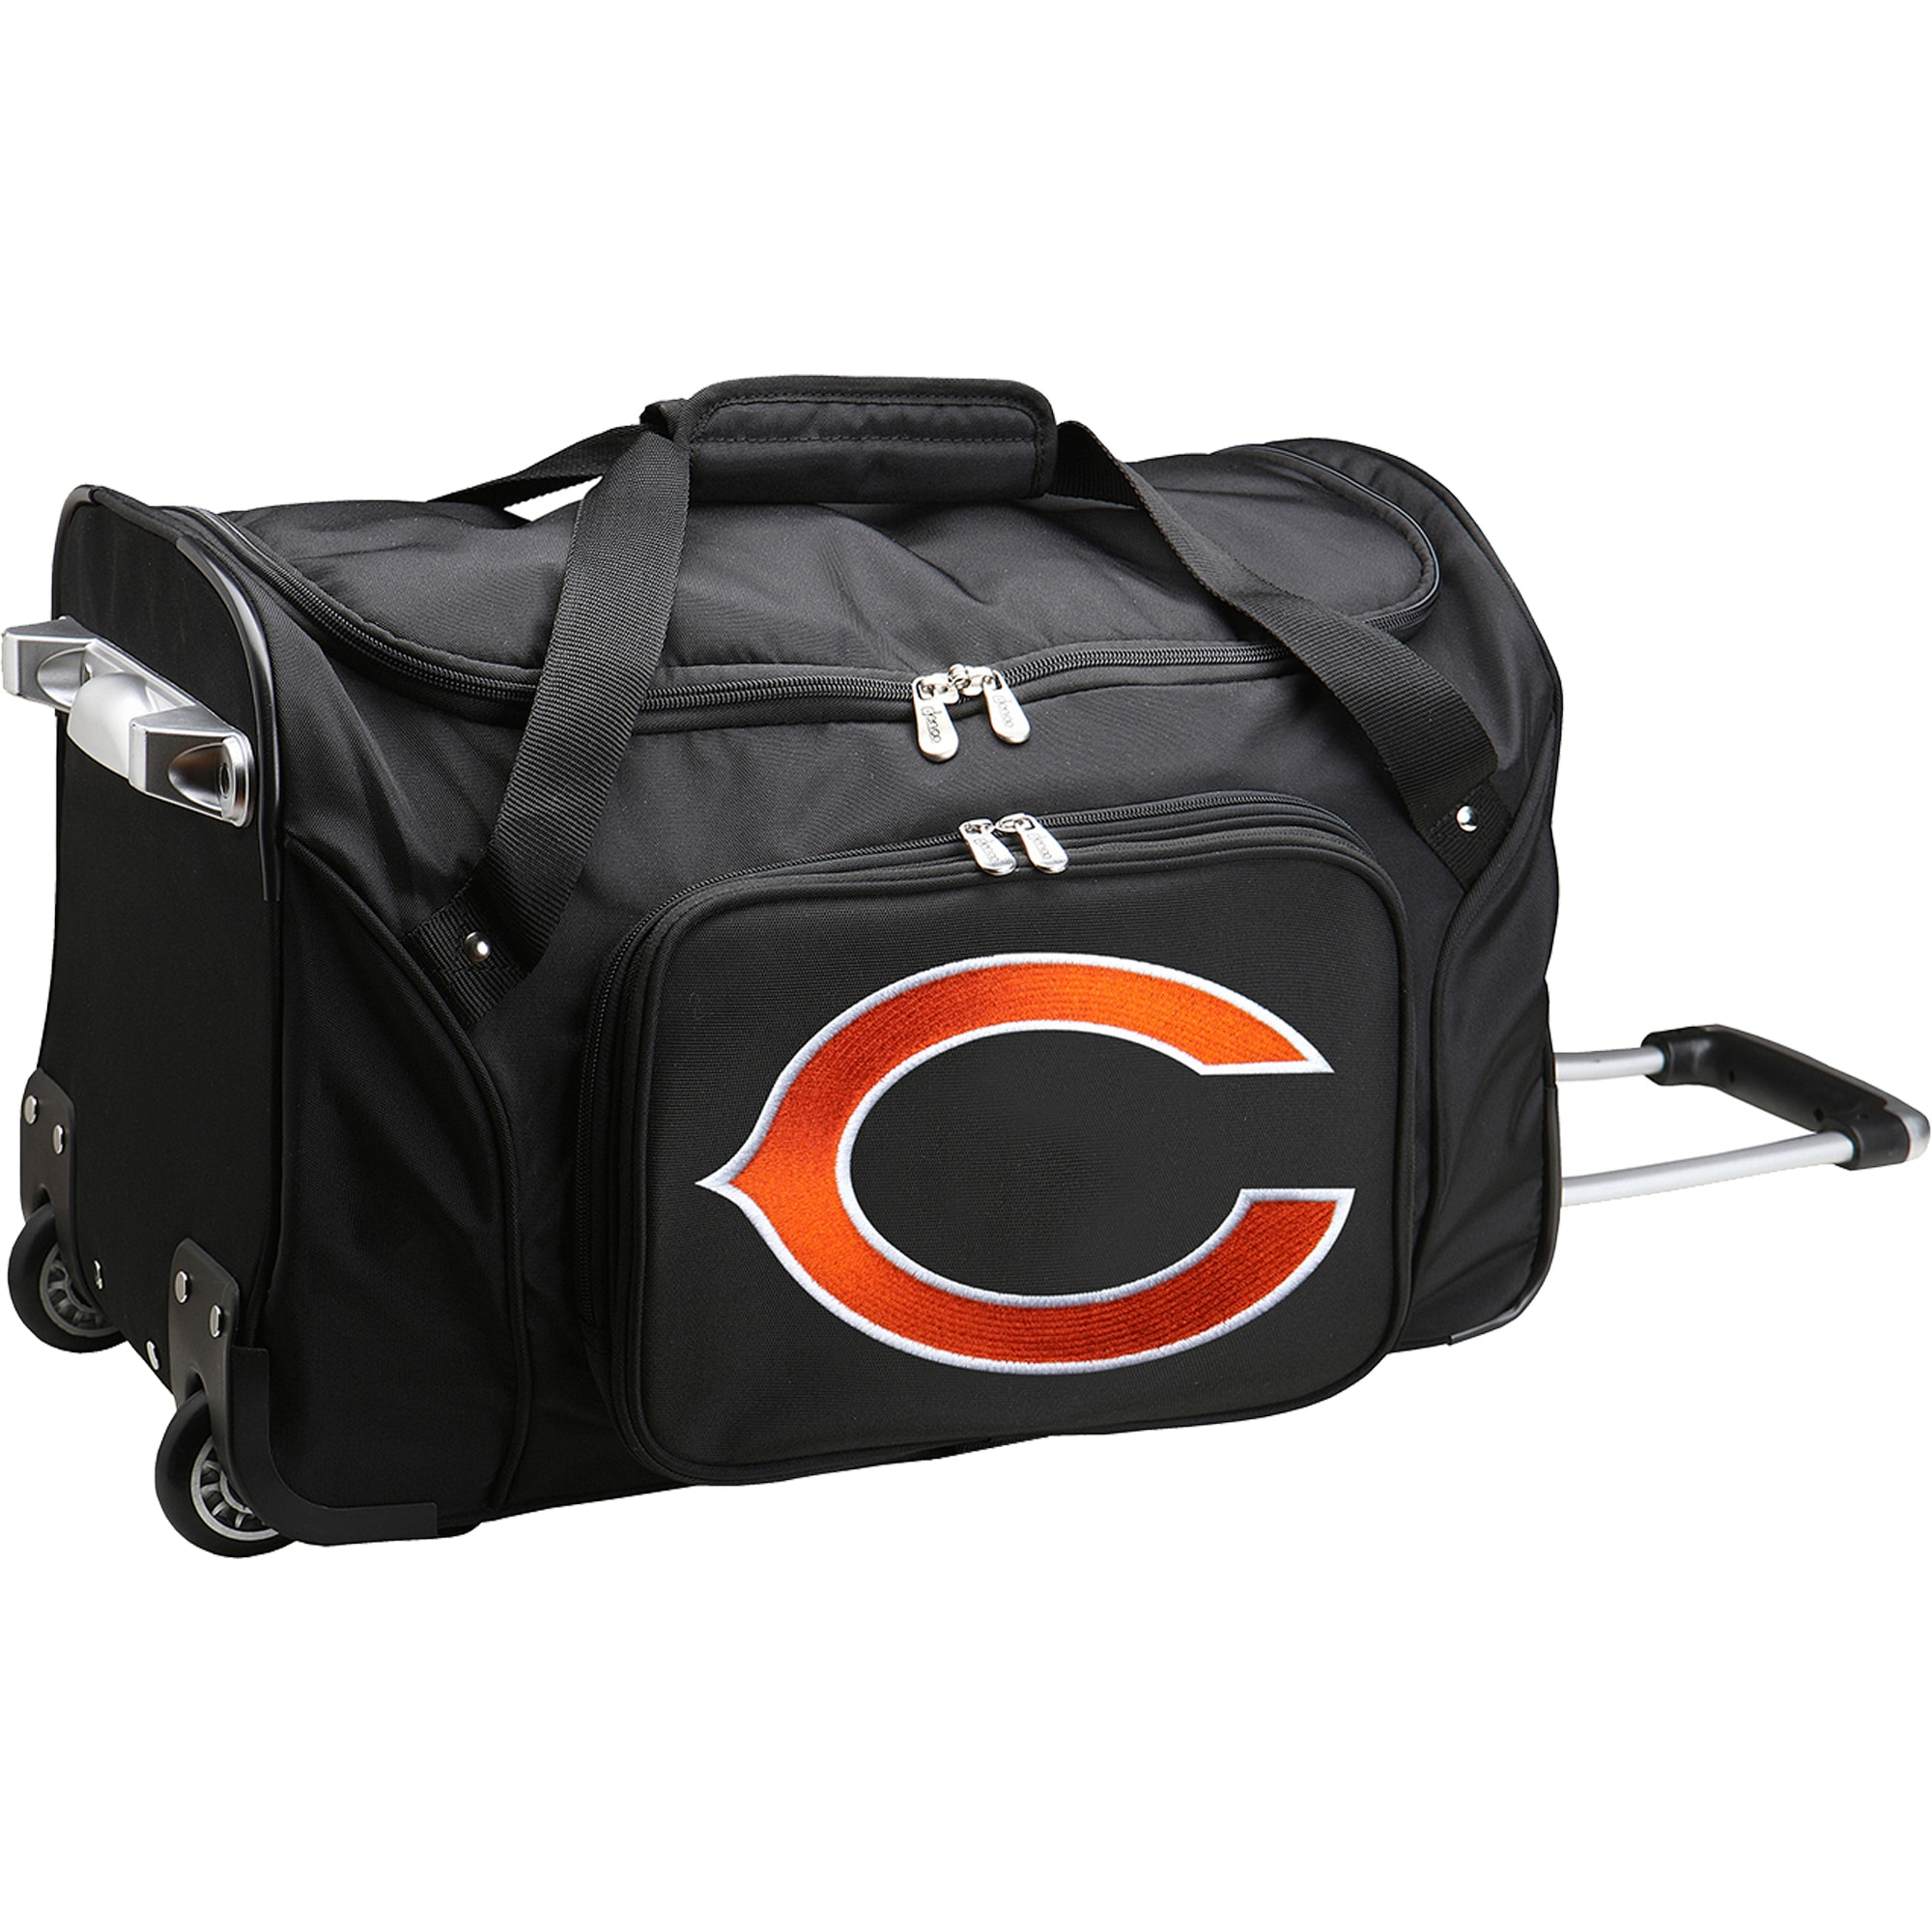 "Chicago Bears 22"" 2-Wheeled Duffel Bag - Black"